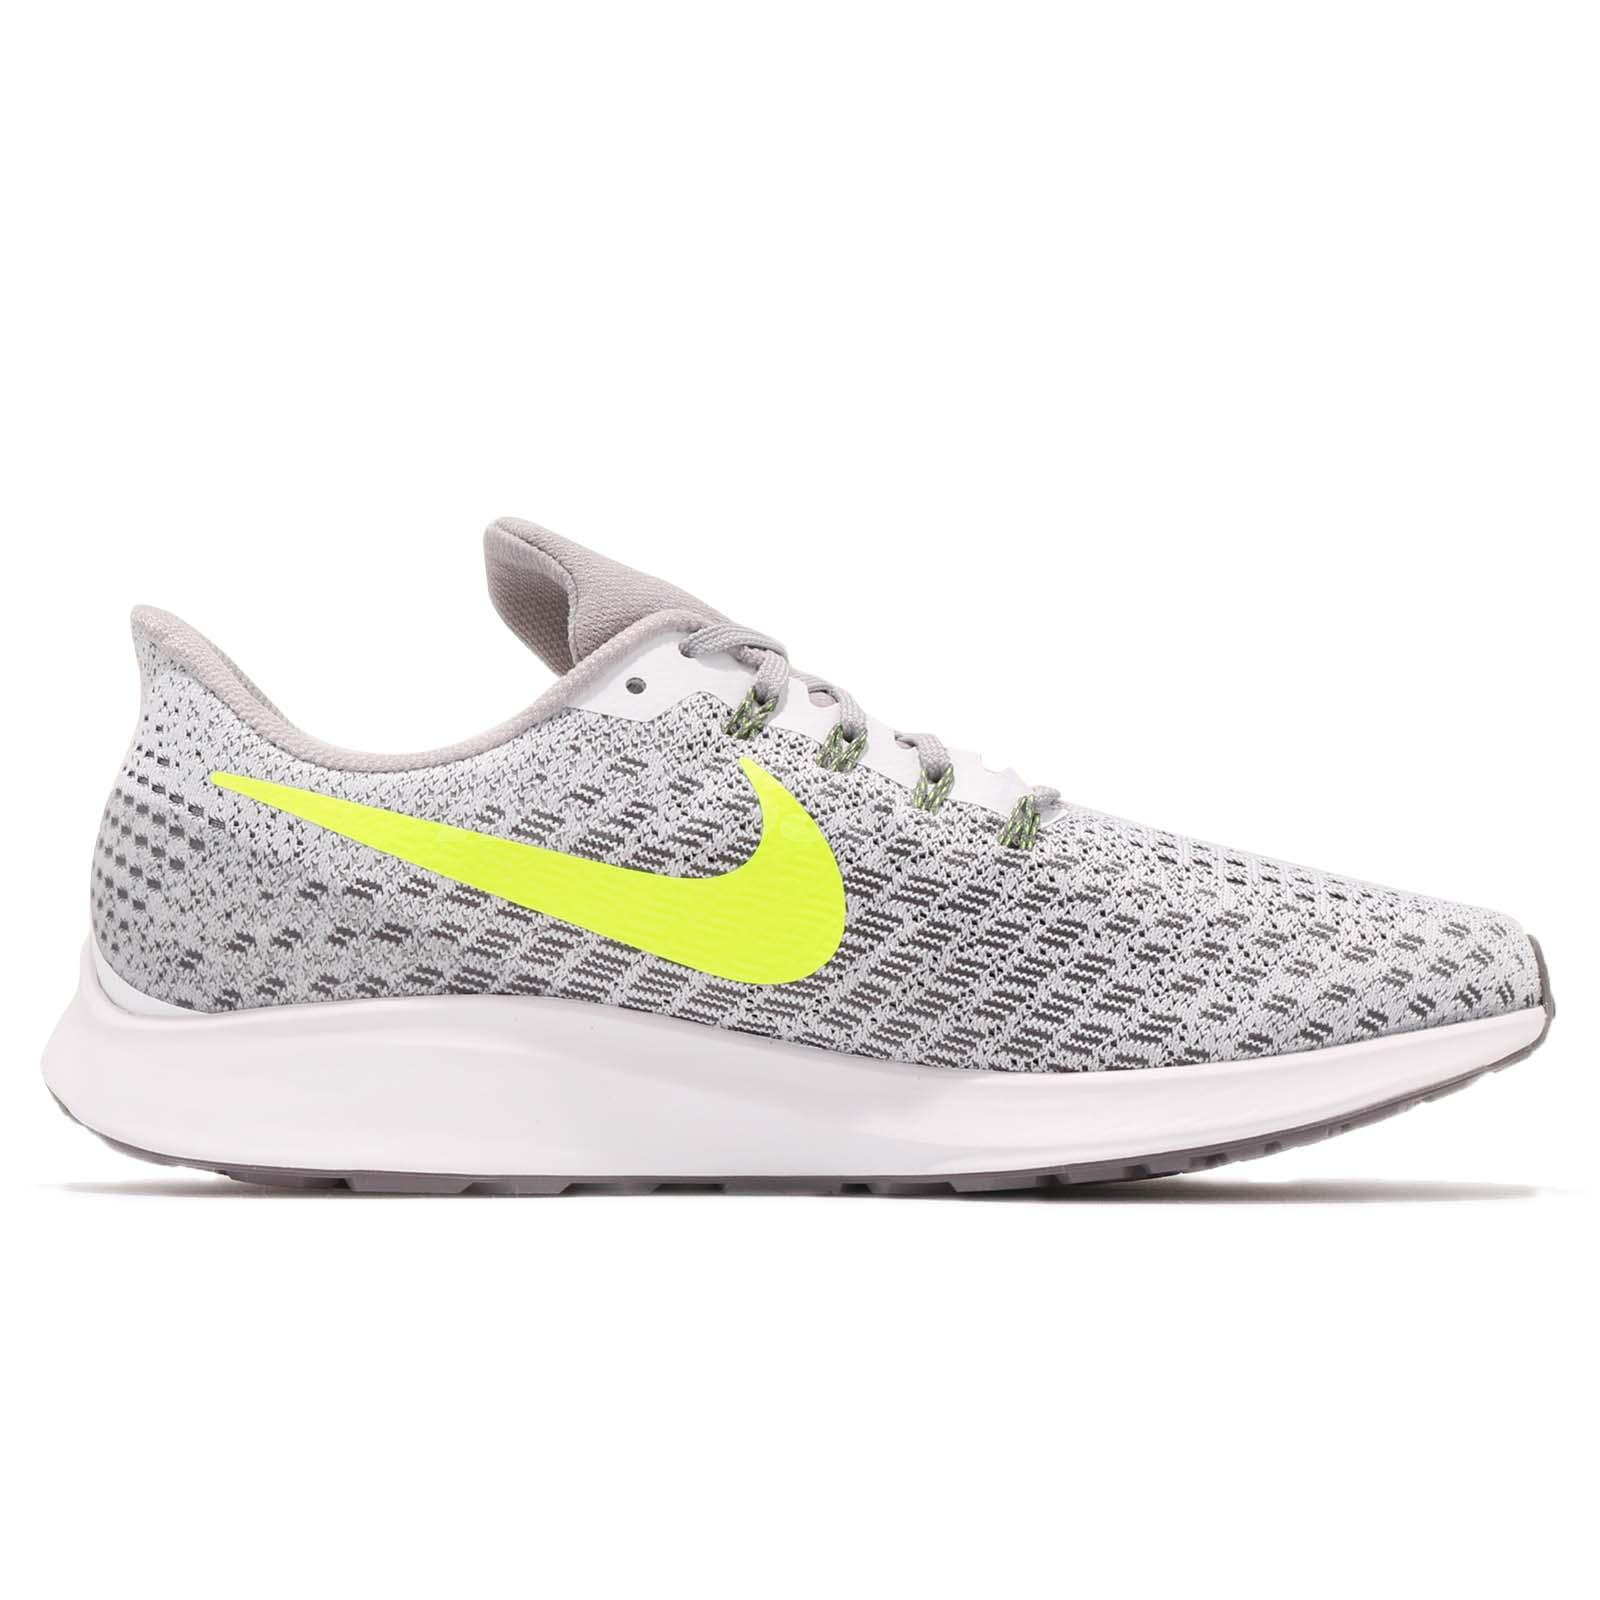 905e43a22798 Nike Air Zoom Pegasus 35 White Volt Grey Men Running Shoes Sneakers ...